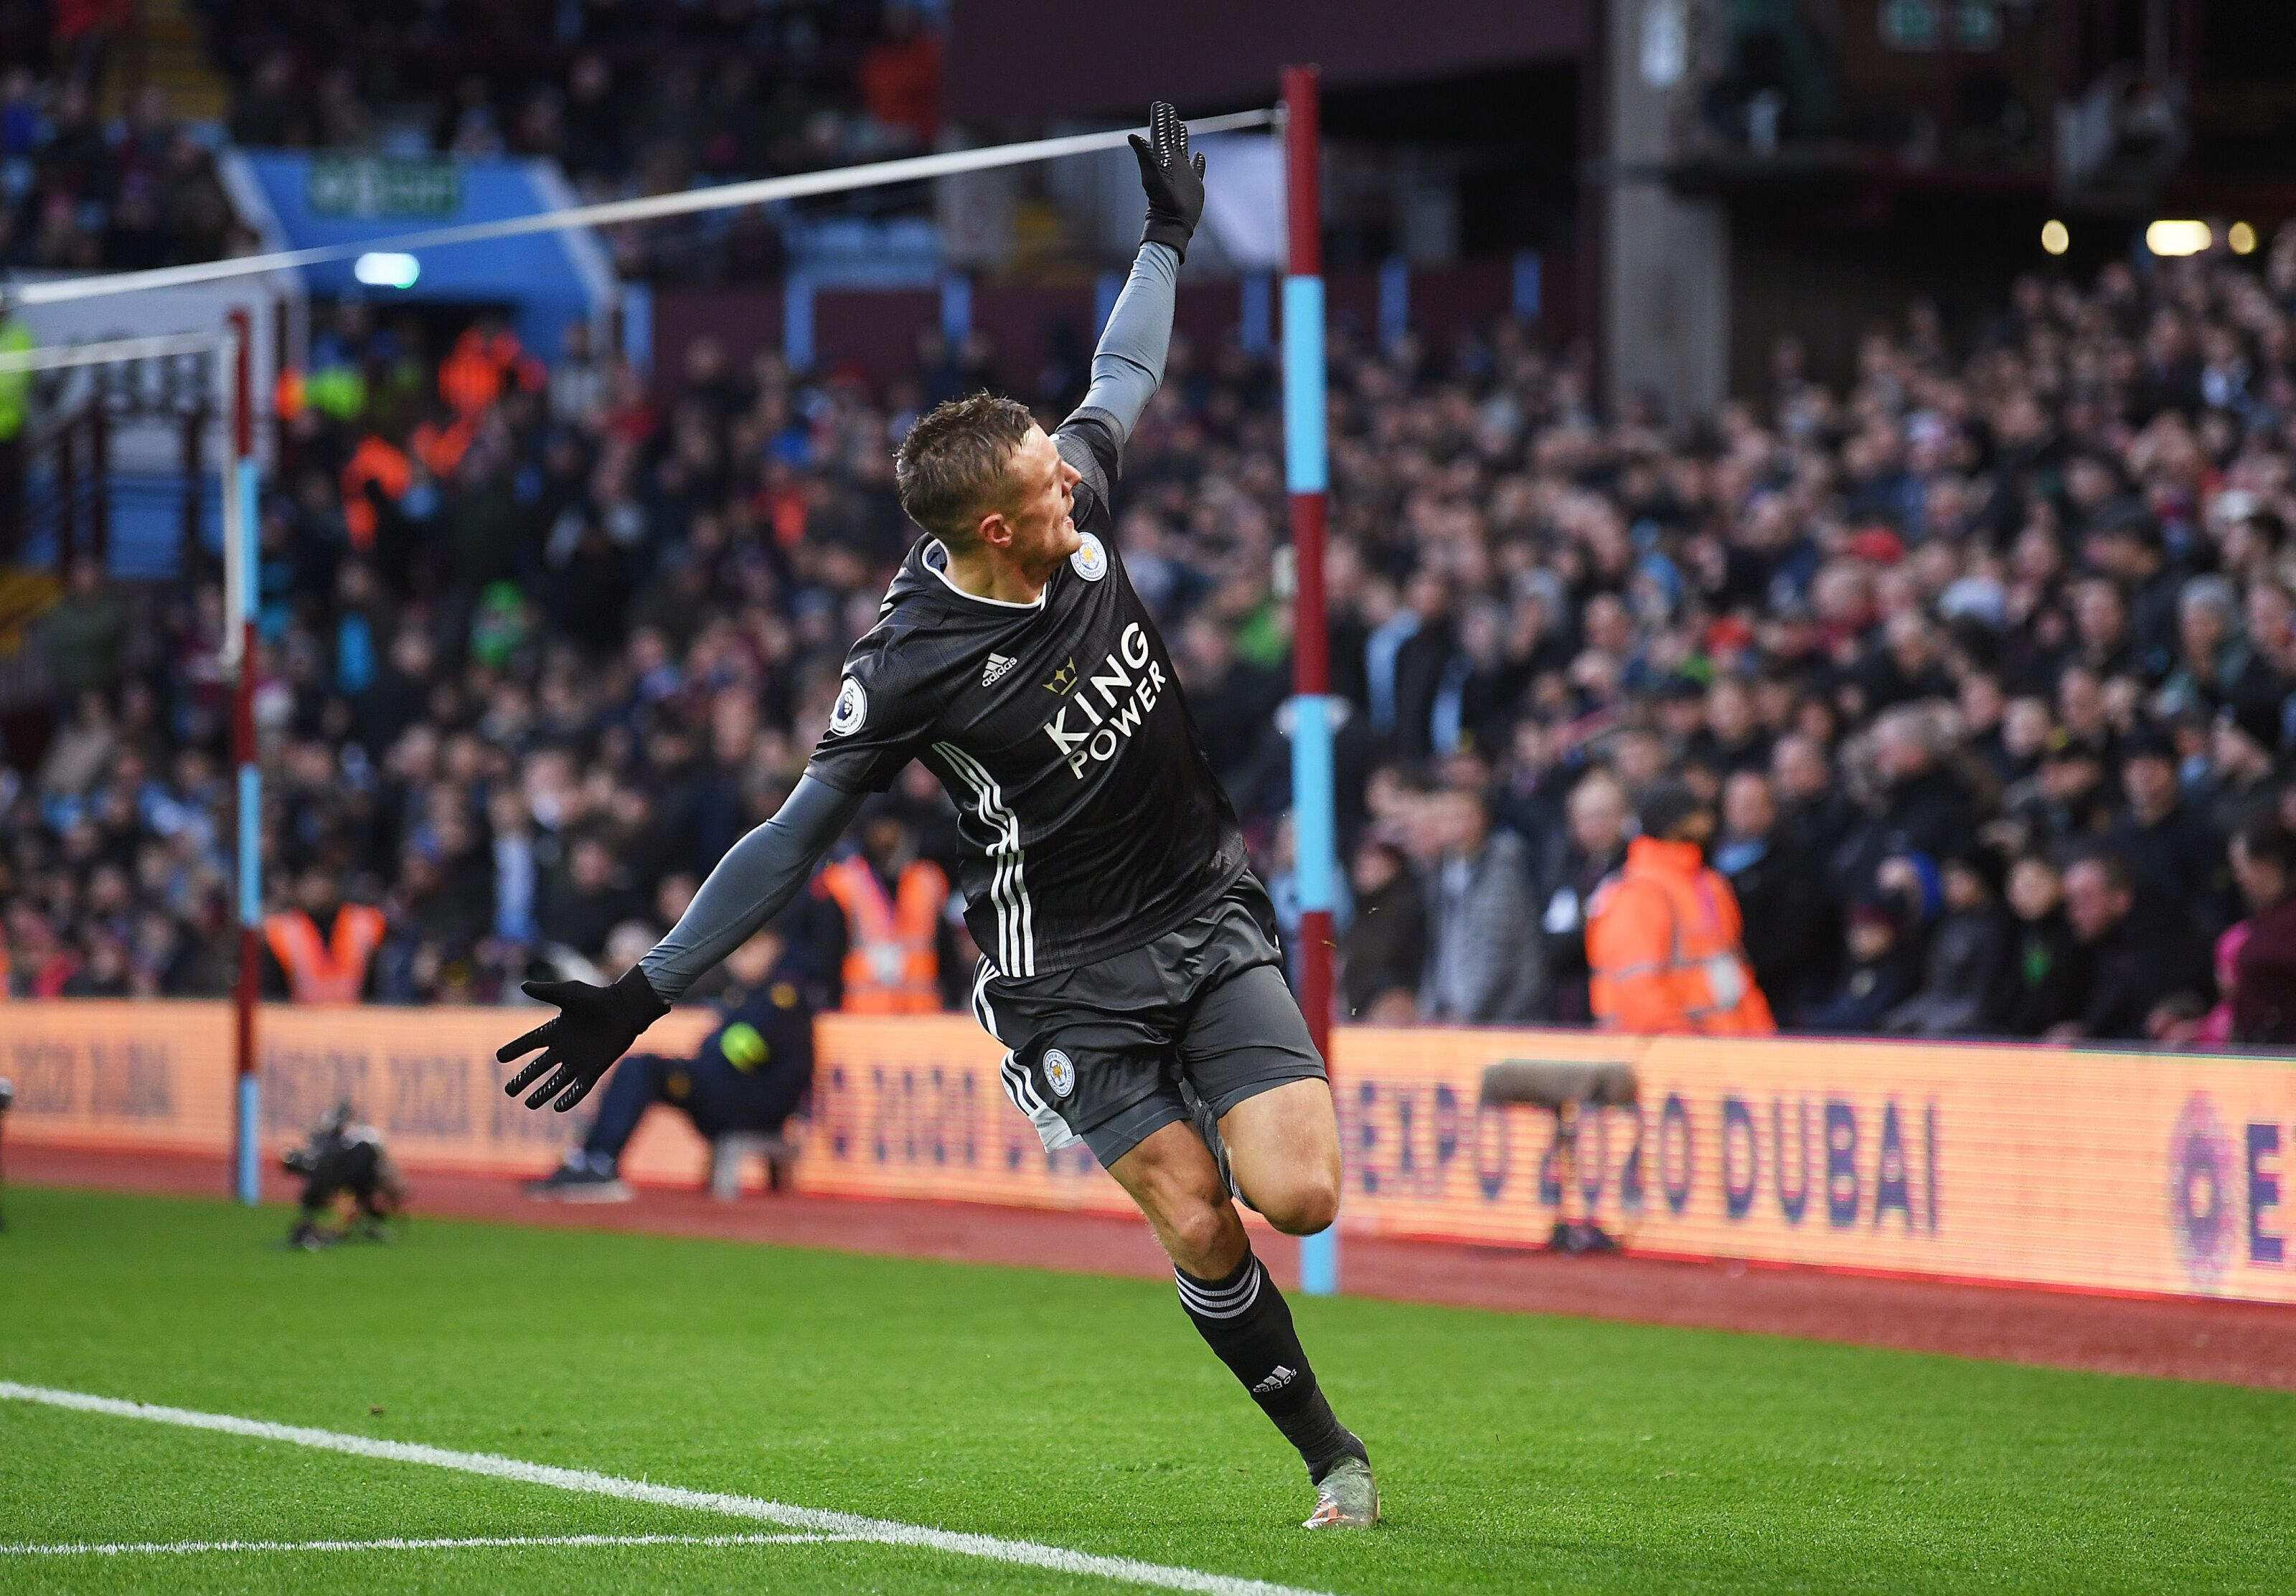 Aston Villa 1-2 Leicester City: A tactical breakdown of the Foxes' eighth consecutive win